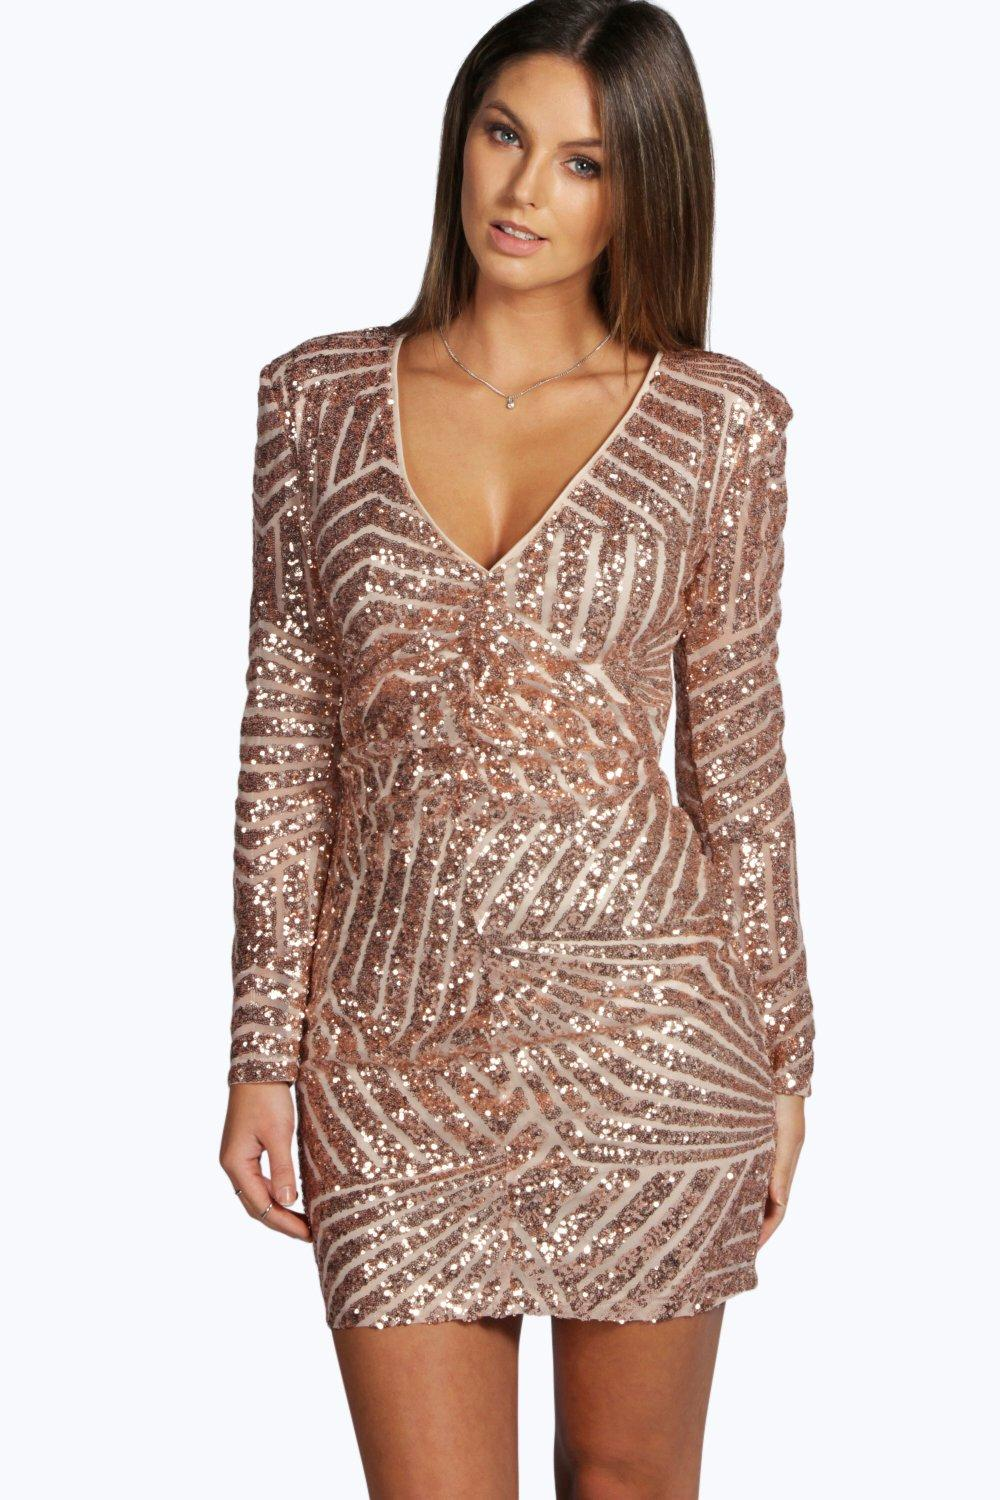 Boohoo clothing online